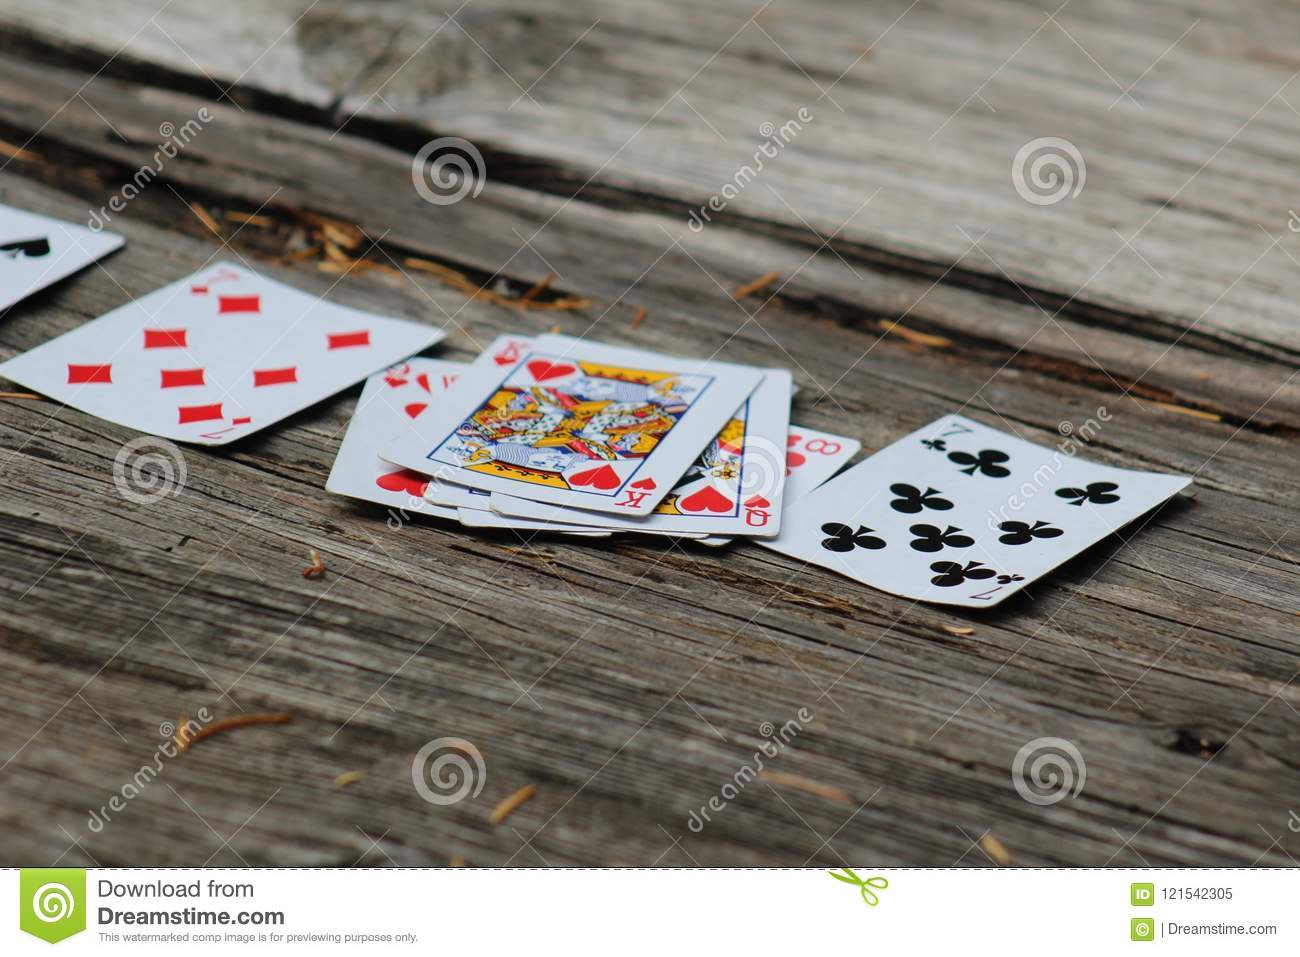 Close-Up of Playing Cards on Old Outdoor Wooden Table